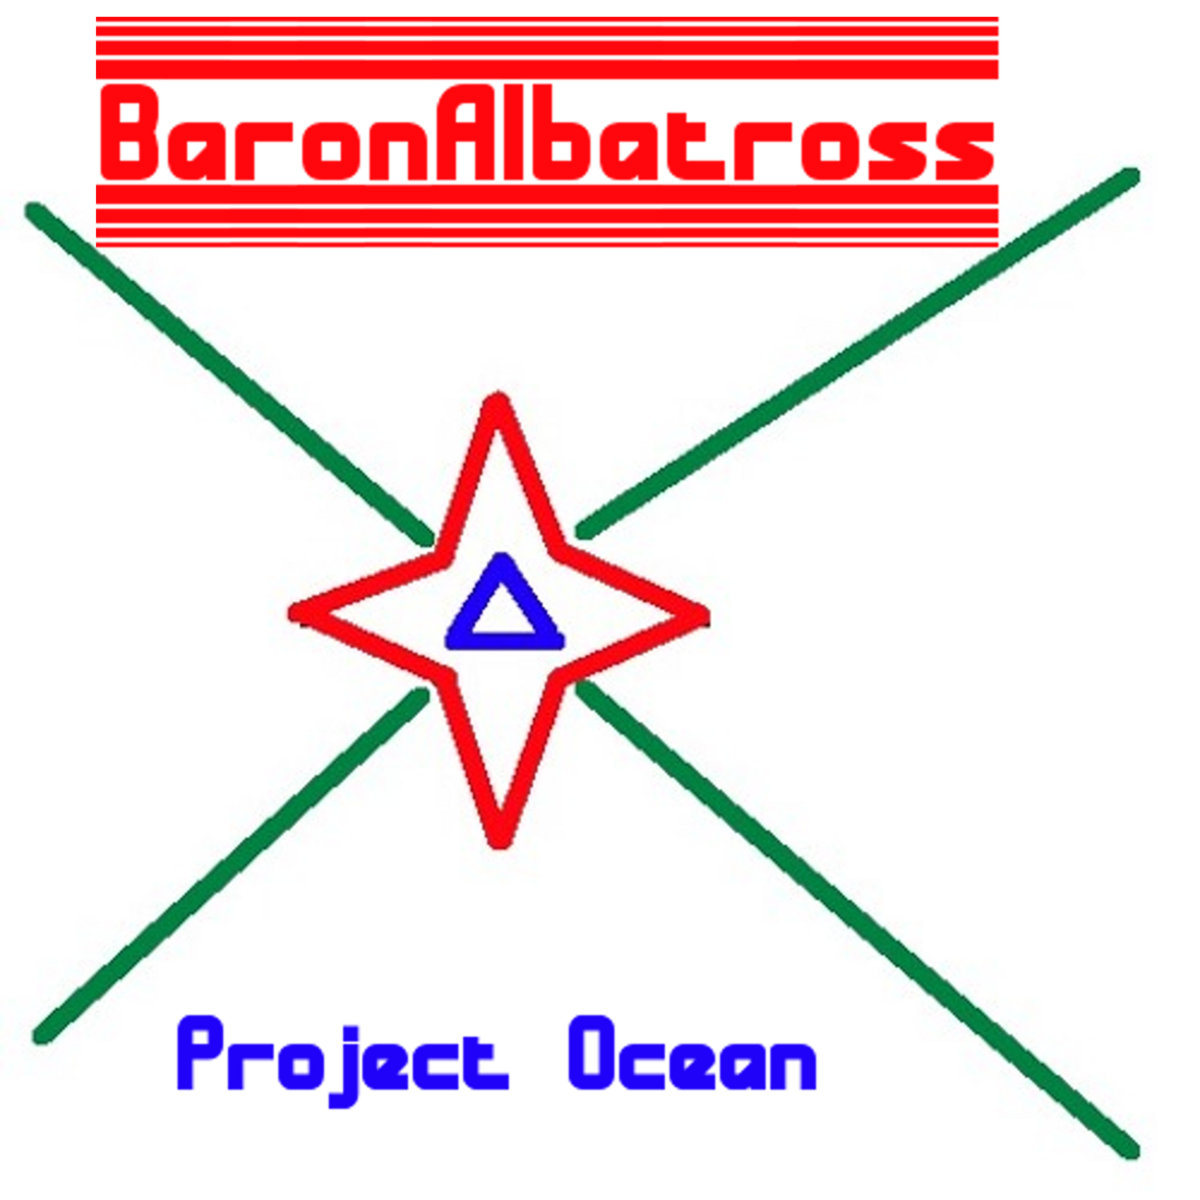 hight resolution of from project ocean by baronalbatross